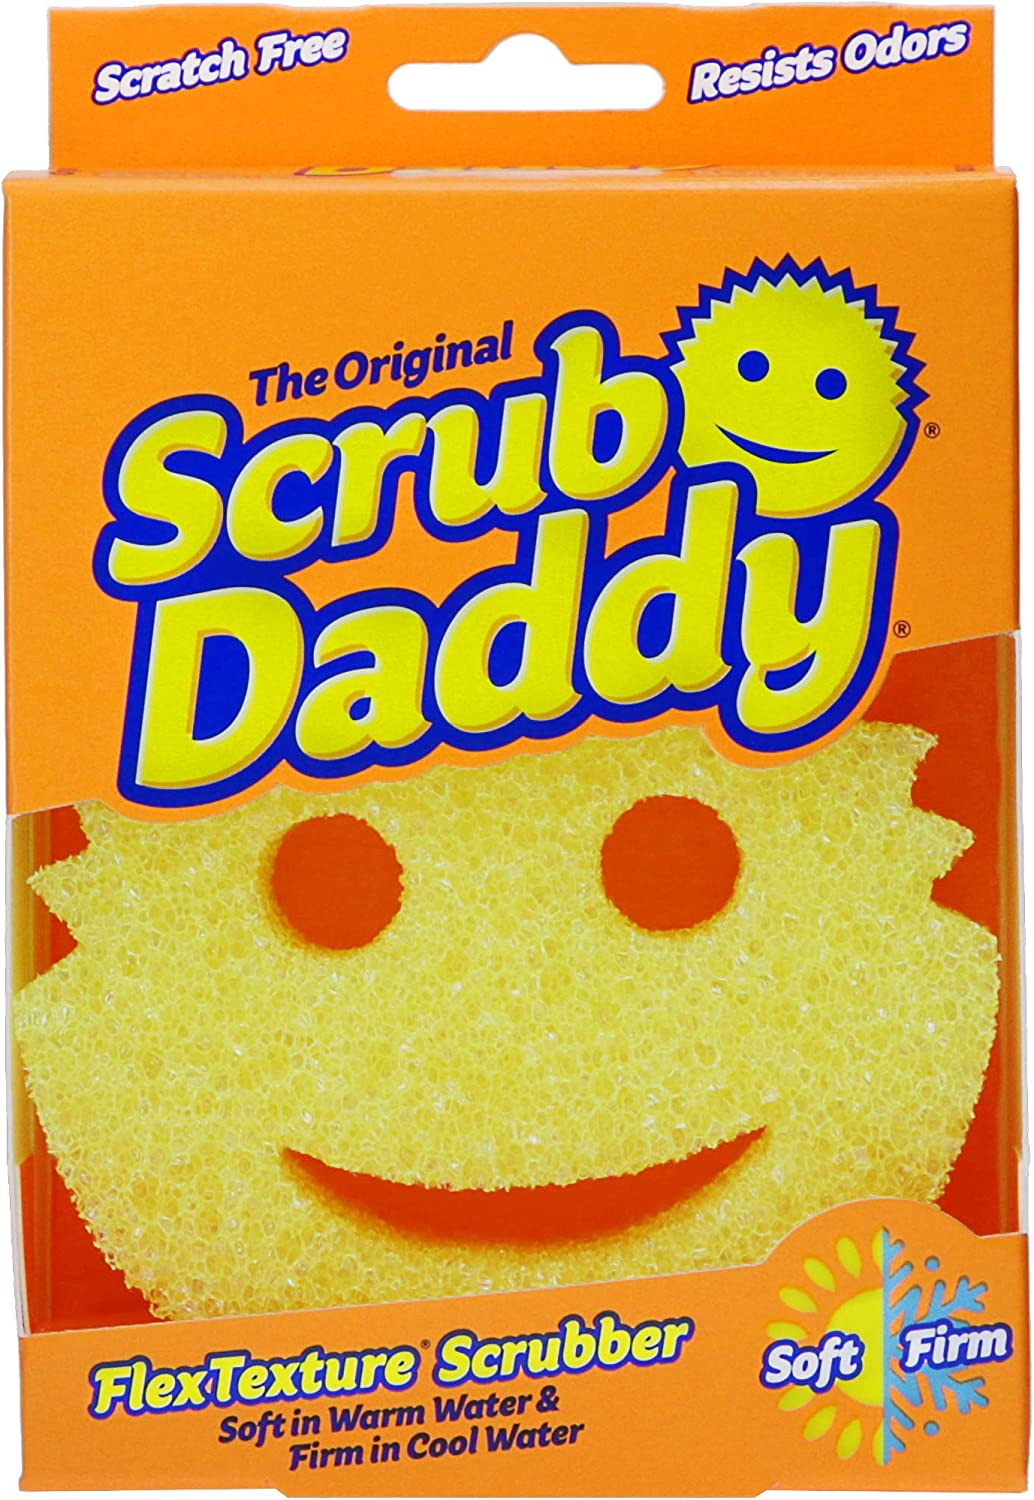 Scrub Daddy- The Original Scrub Daddy - FlexTexture Sponge, Soft in Warm Water, Firm in Cold, Deep Cleaning, Dishwasher Safe, Multi-use, Scratch Free, Odor Resistant, Functional, Ergonomic, 1pk